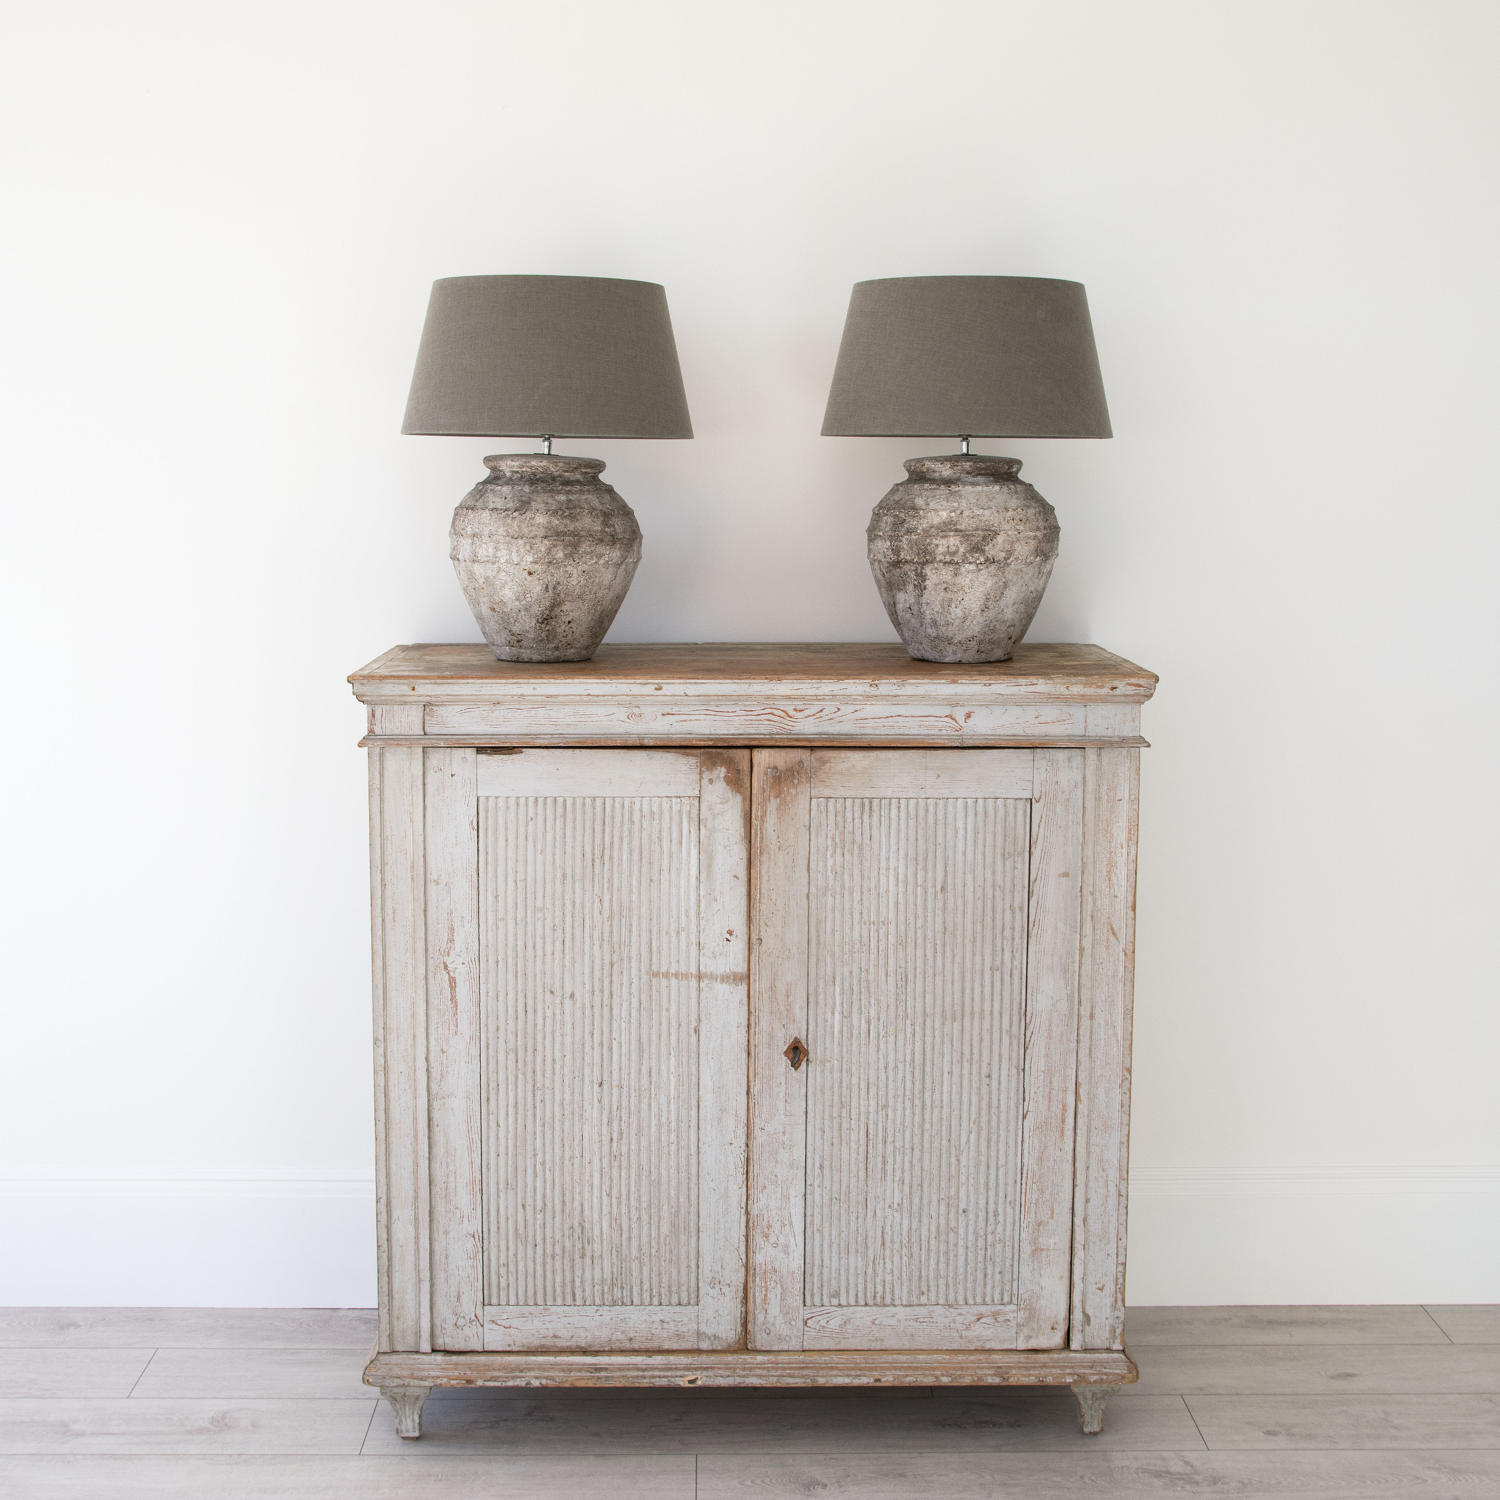 GUSTAVIAN SIDEBOARD IN UNTOUCHED ORIGINAL COLOUR